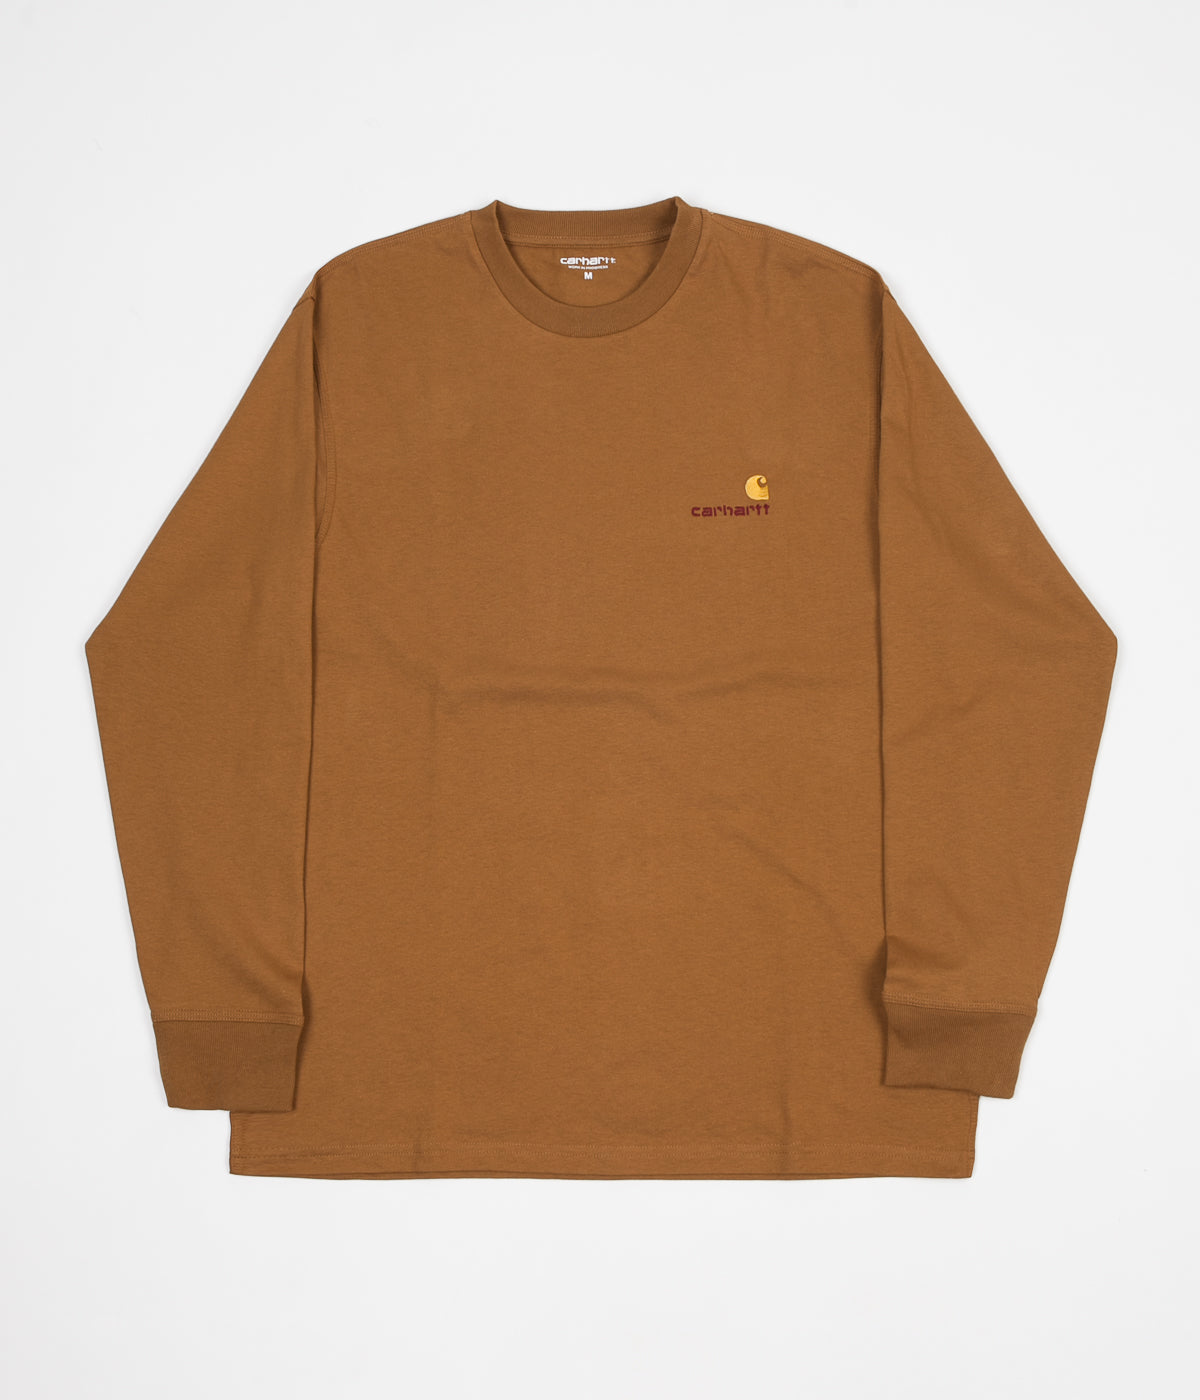 Carhartt American Script Long Sleeve T-Shirt - Hamilton Brown